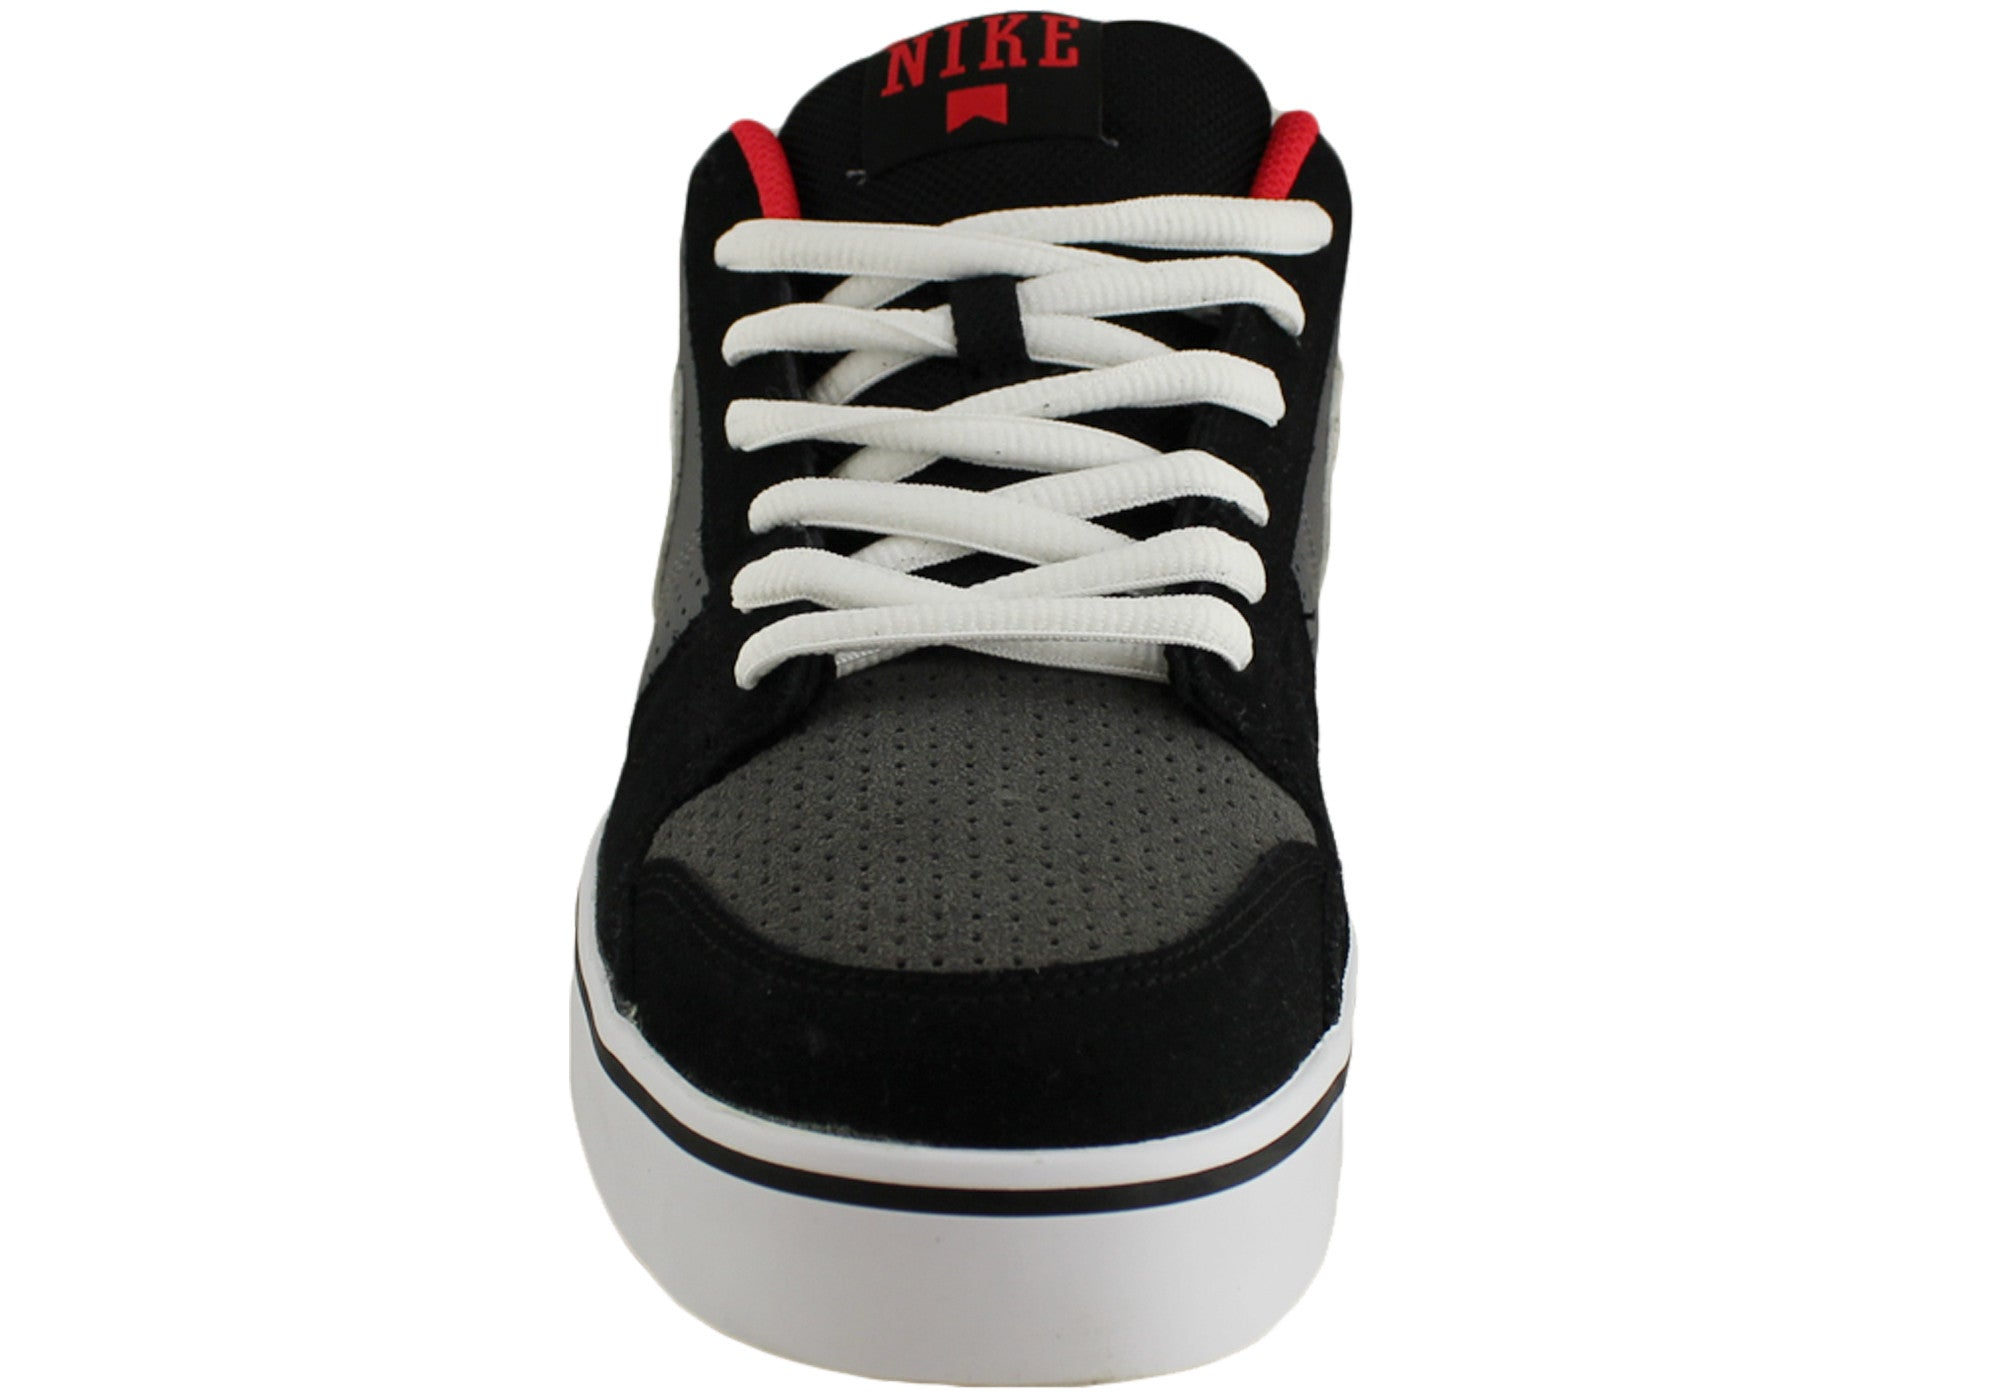 Nike Ruckus Low Mens Casual Shoes